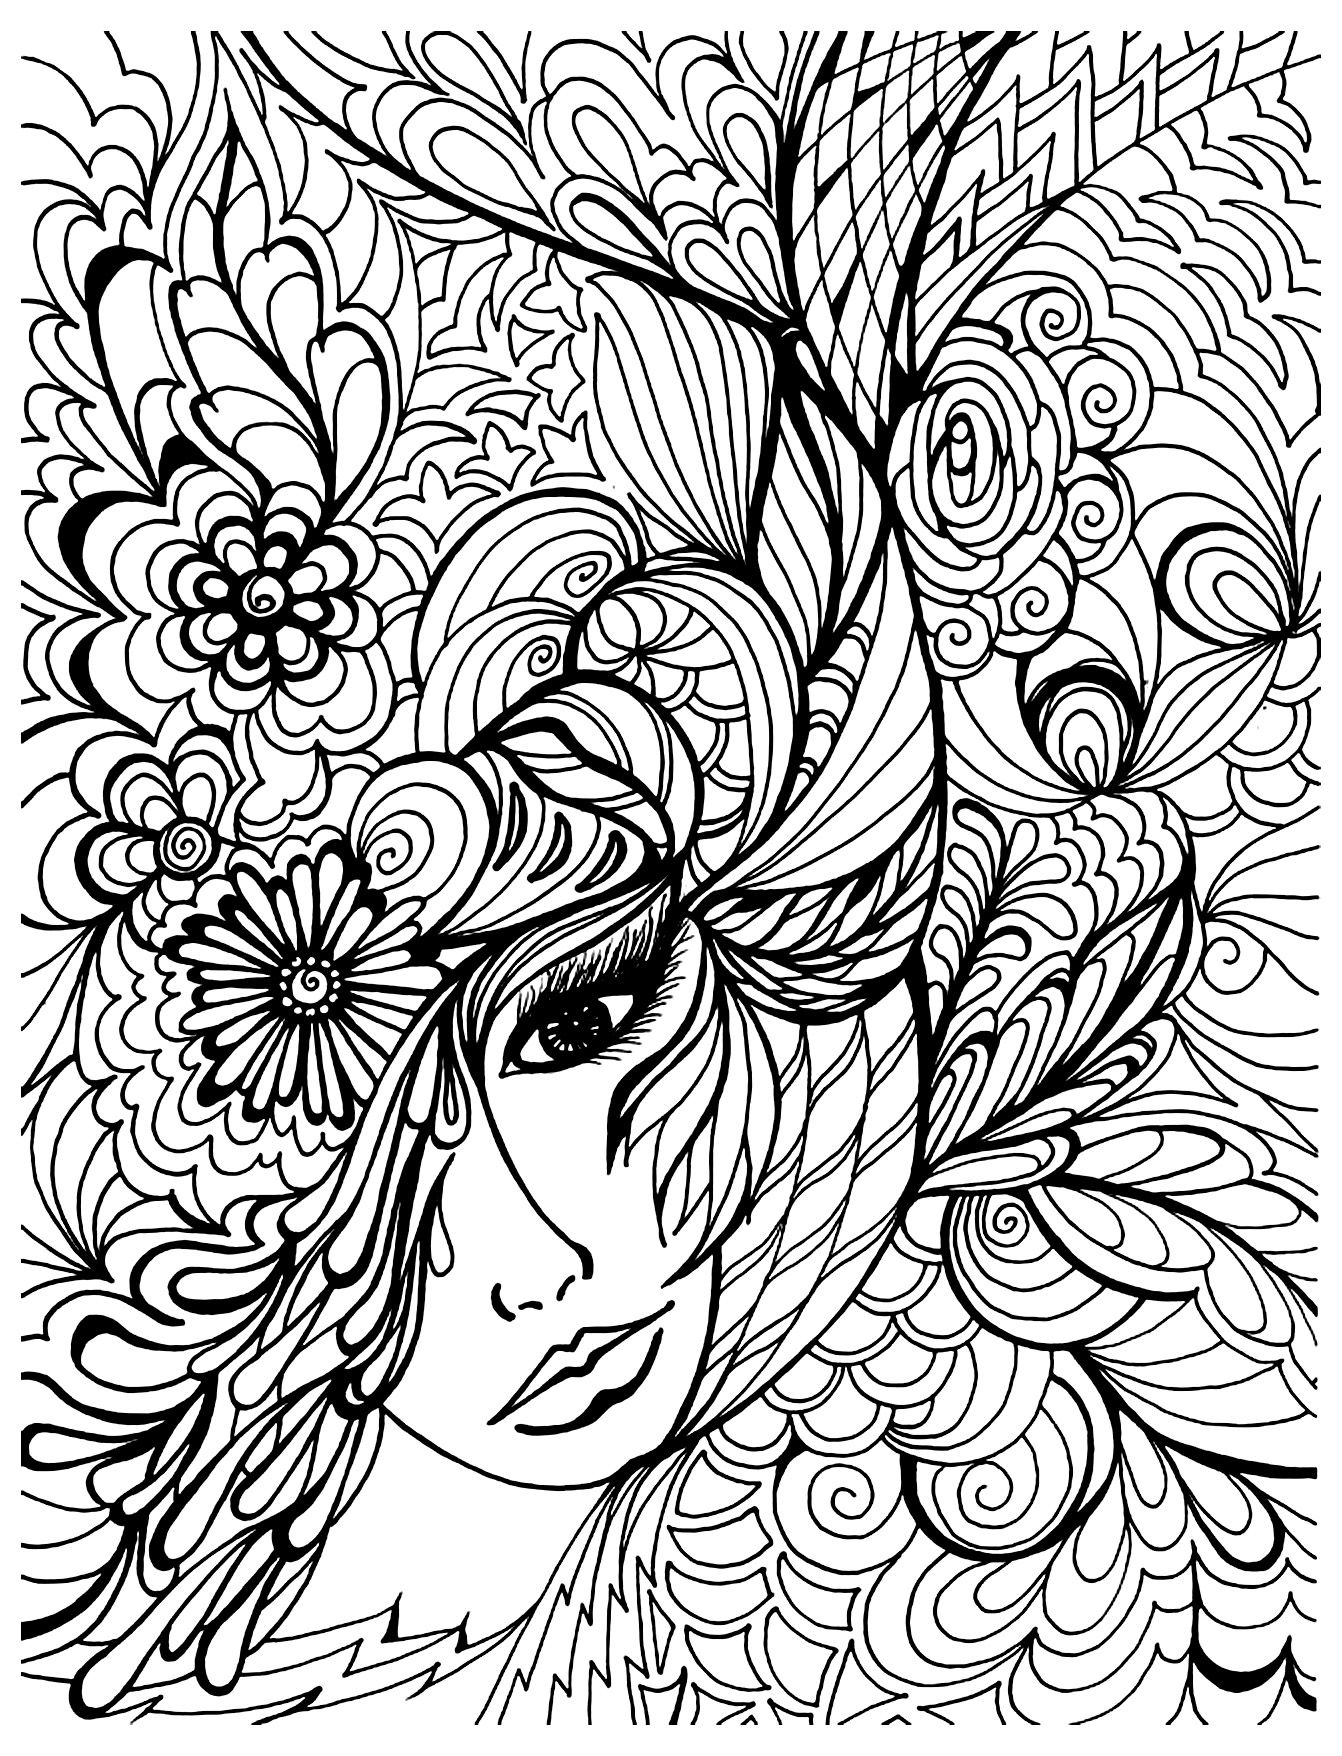 Zen ocean colouring book - Coloring Face Vegetation From The Gallery Zen Anti Stress